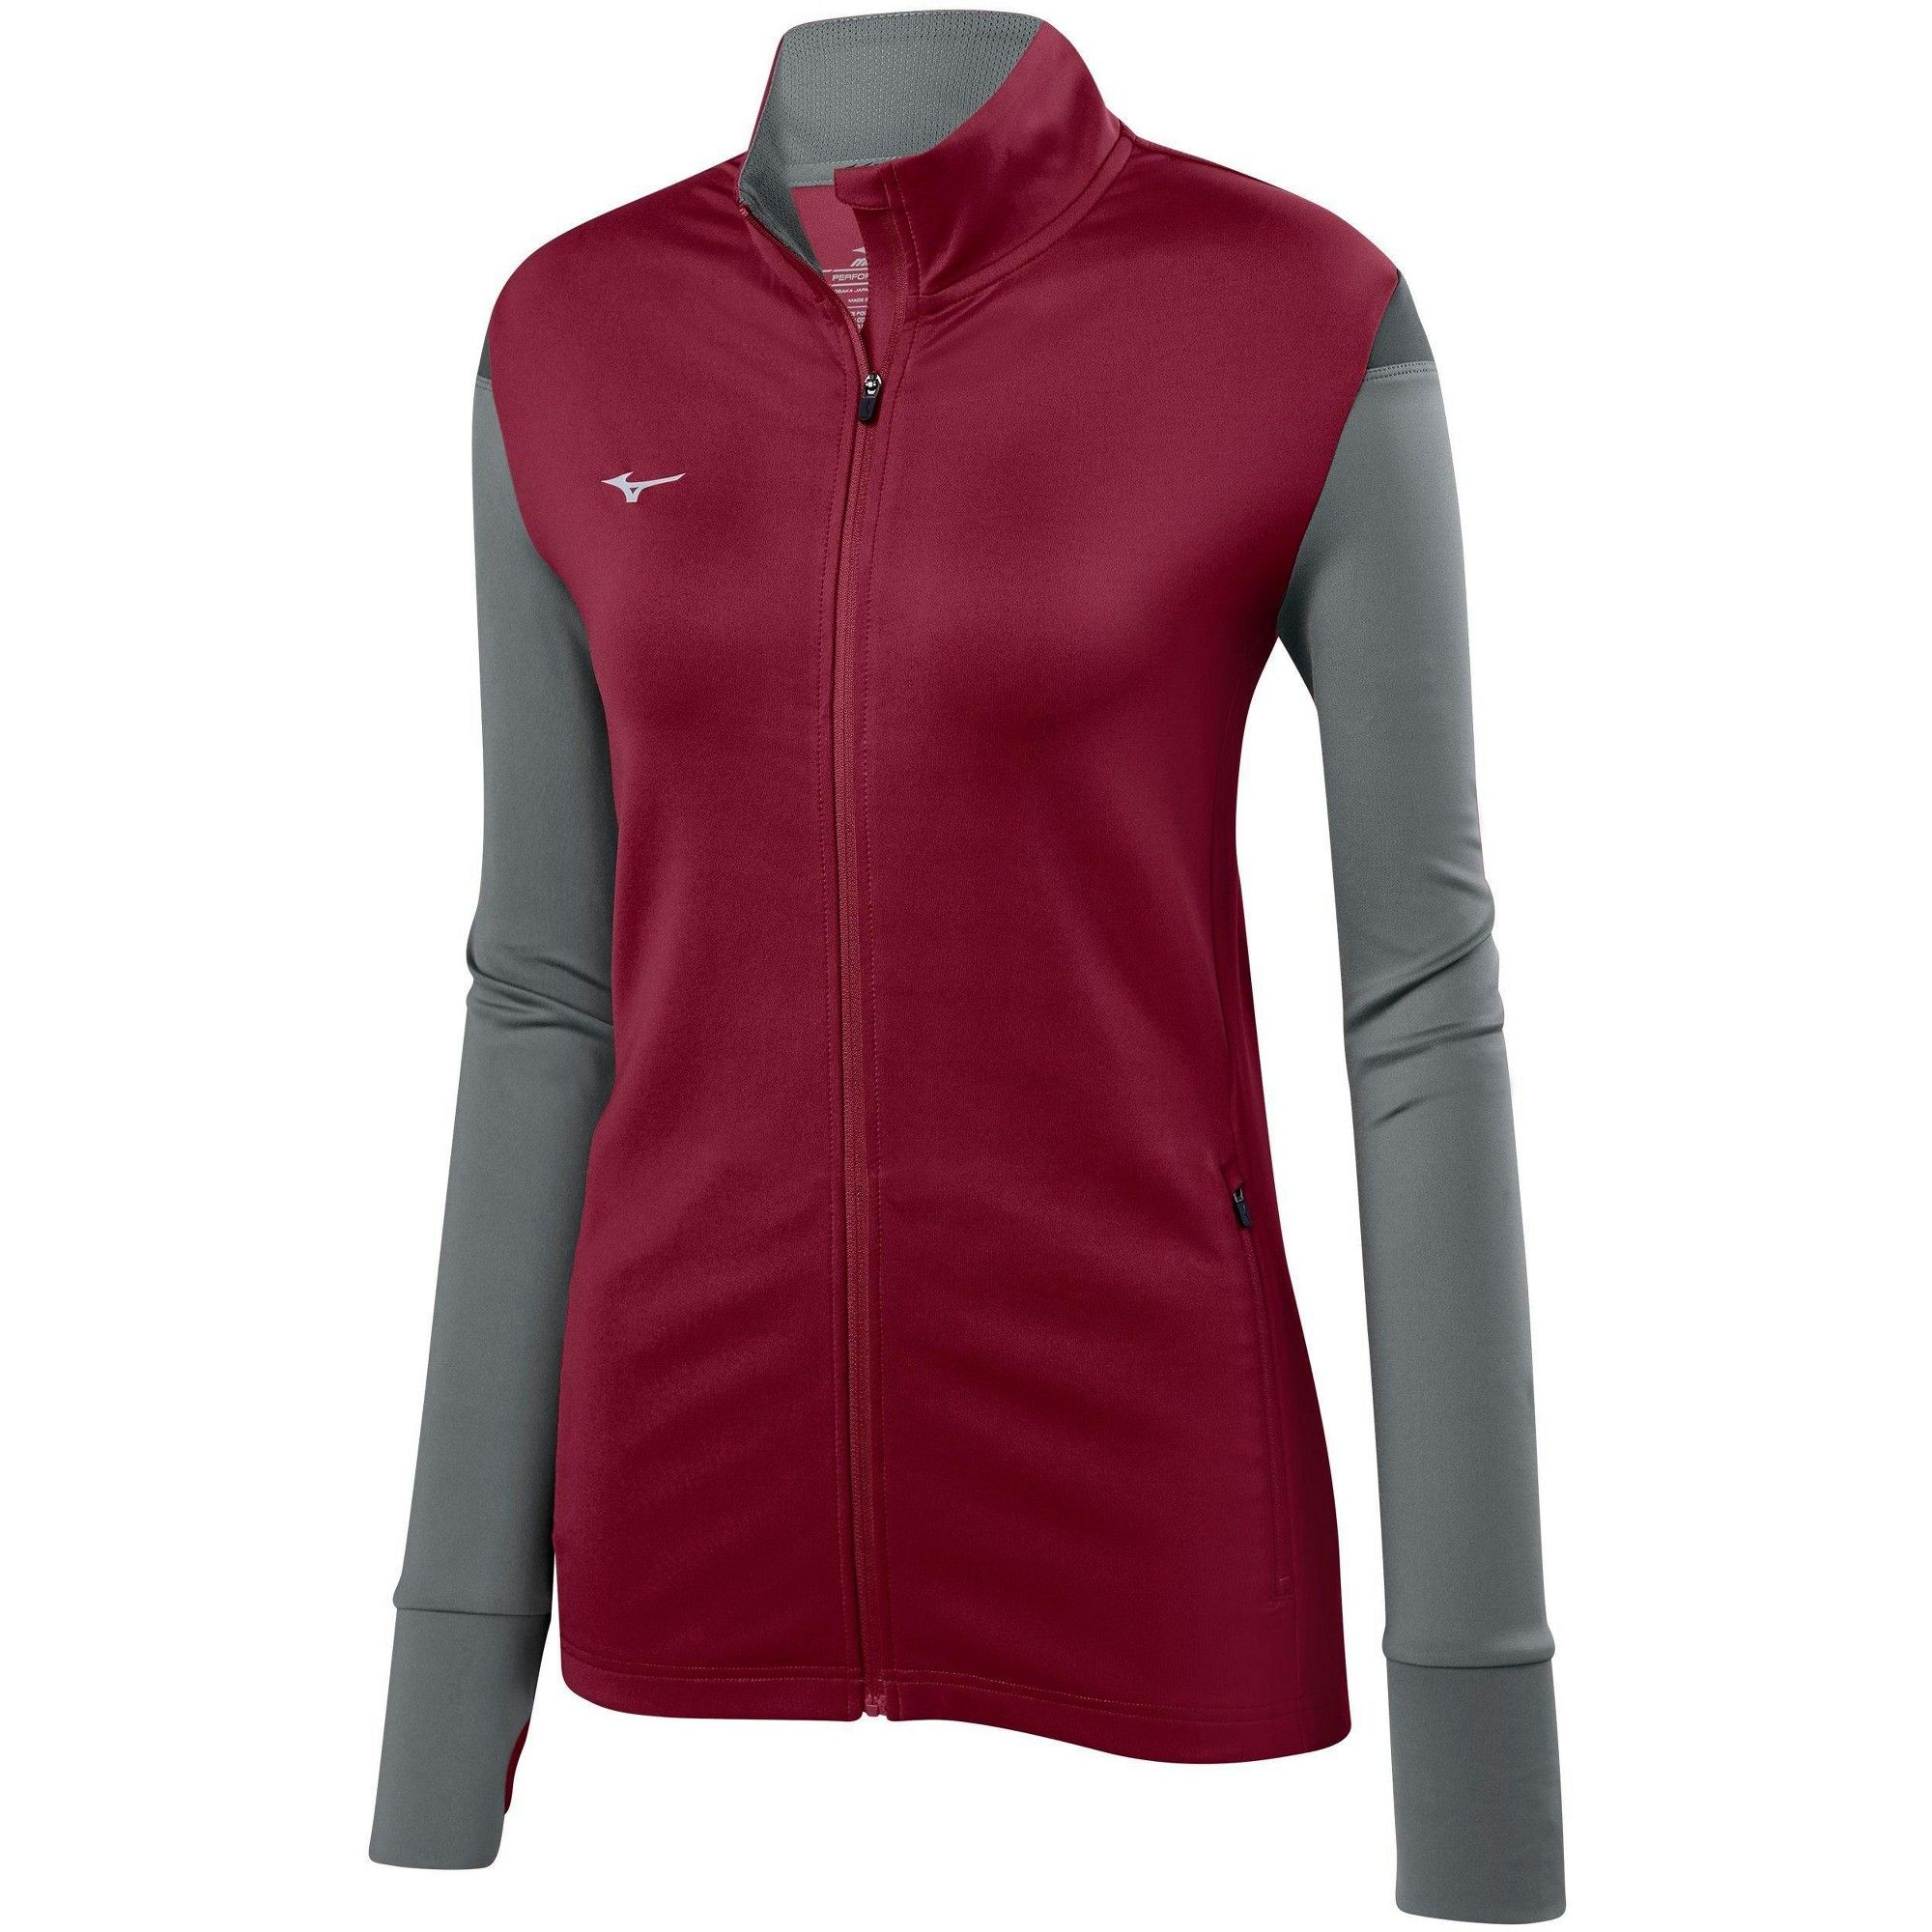 Mizuno Women S Horizon Full Zip Volleyball Jacket Size Extra Extra Large In Color Cardinal Grey 1291 Jackets For Women Jackets Street Style Women